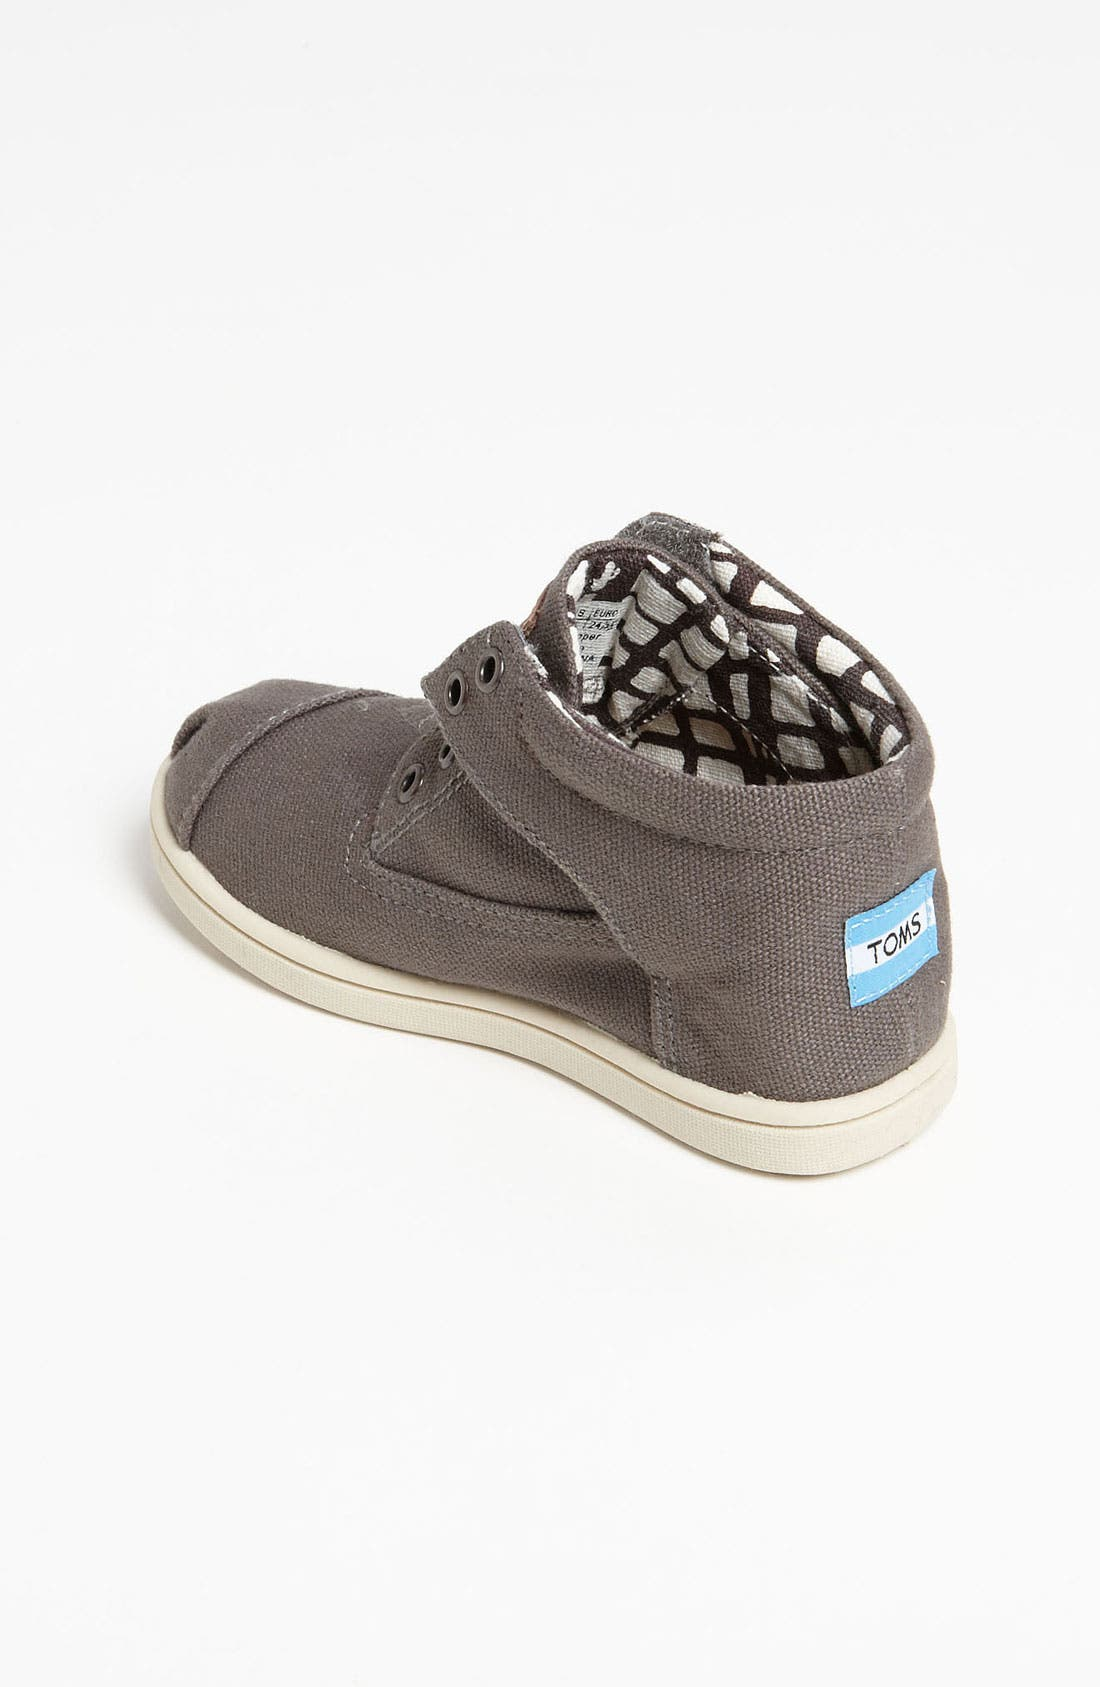 Alternate Image 2  - TOMS 'Botas - Tiny' Canvas Boot (Baby, Walker & Toddler)